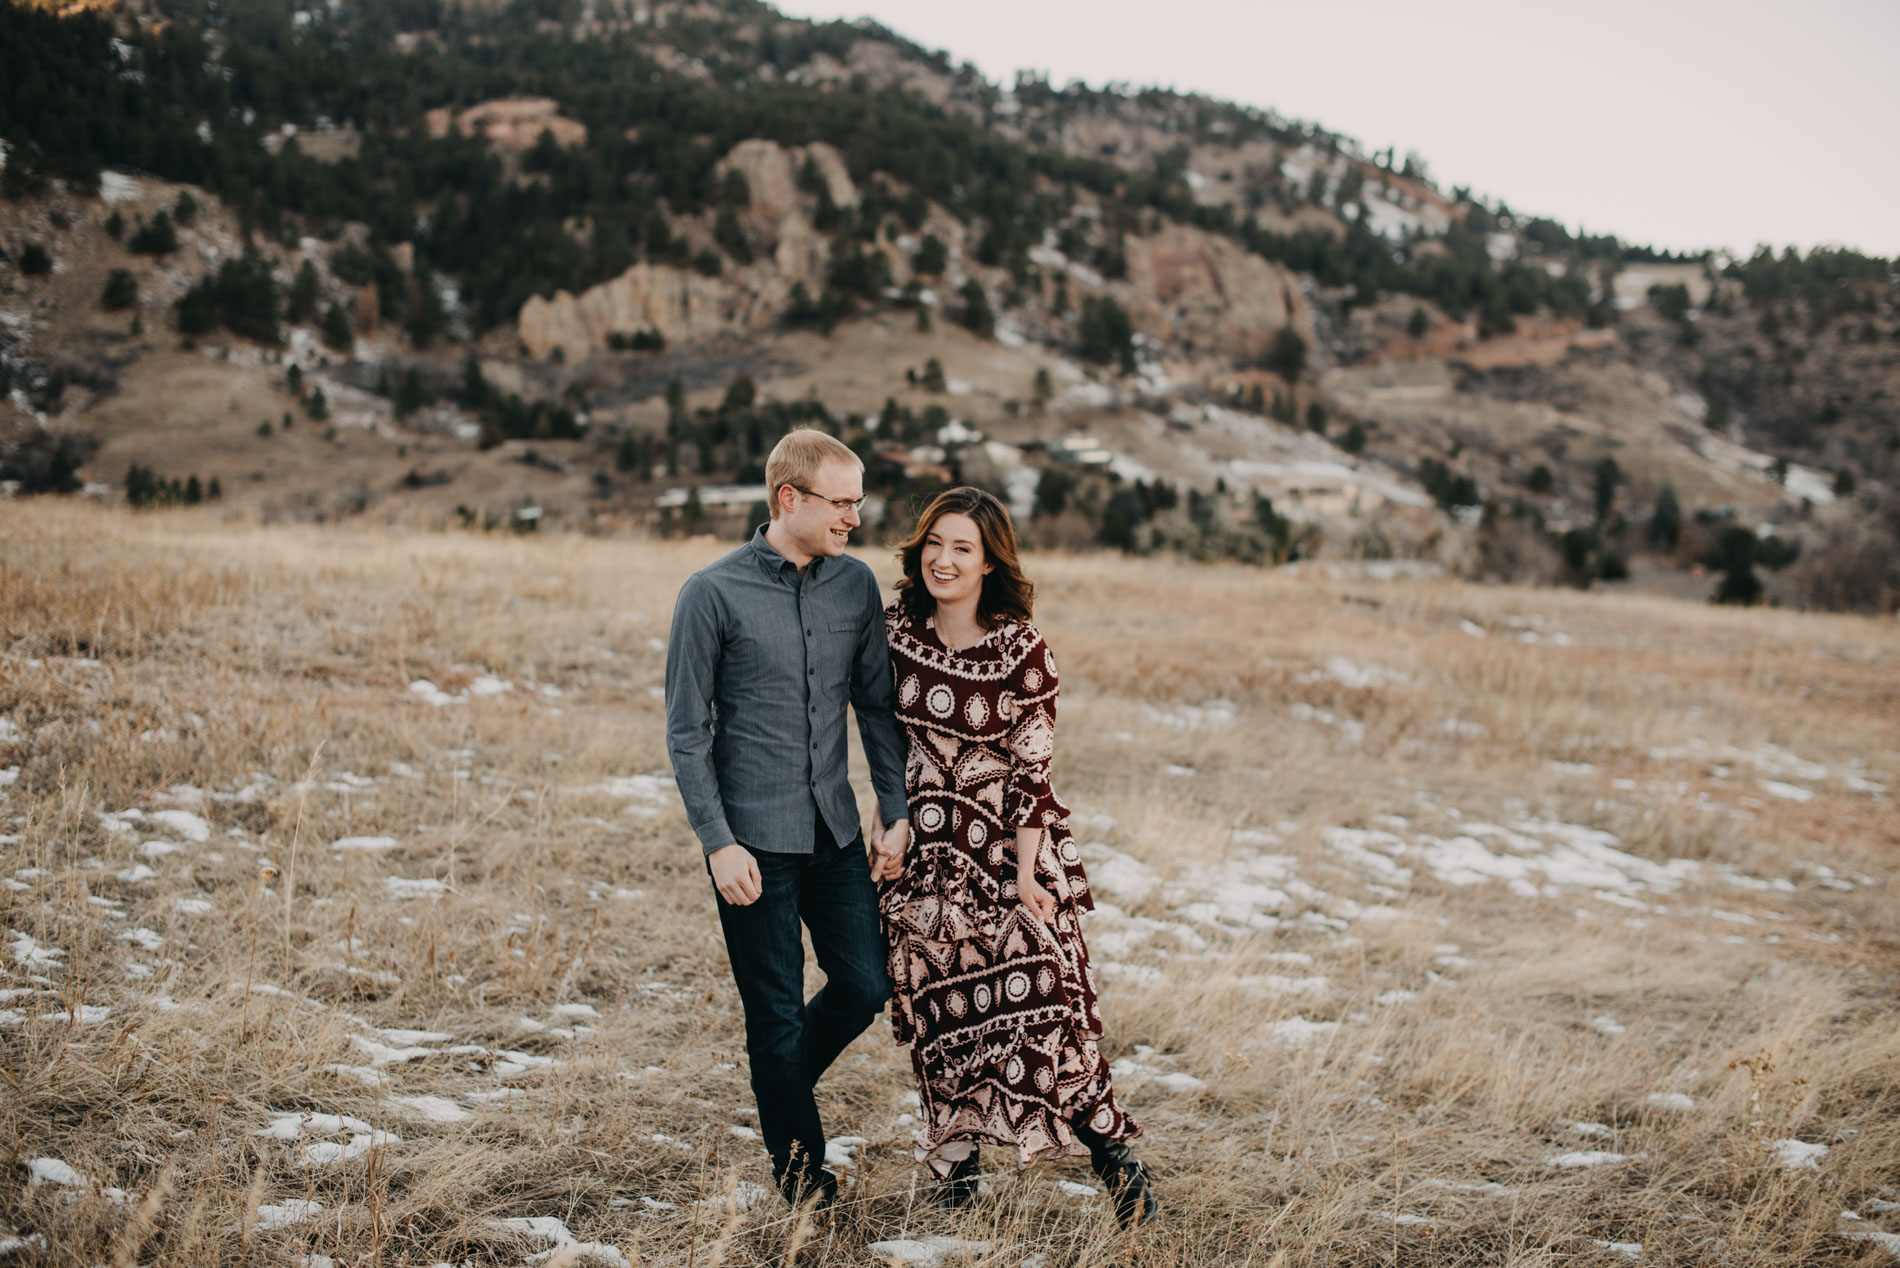 chautauqua-boulder-engagement-session-colorado-engagement-session-colorado-destination-session-chautauqua-adventure-session-chautauqua-couples-hiking-engagement-colorado-photographer